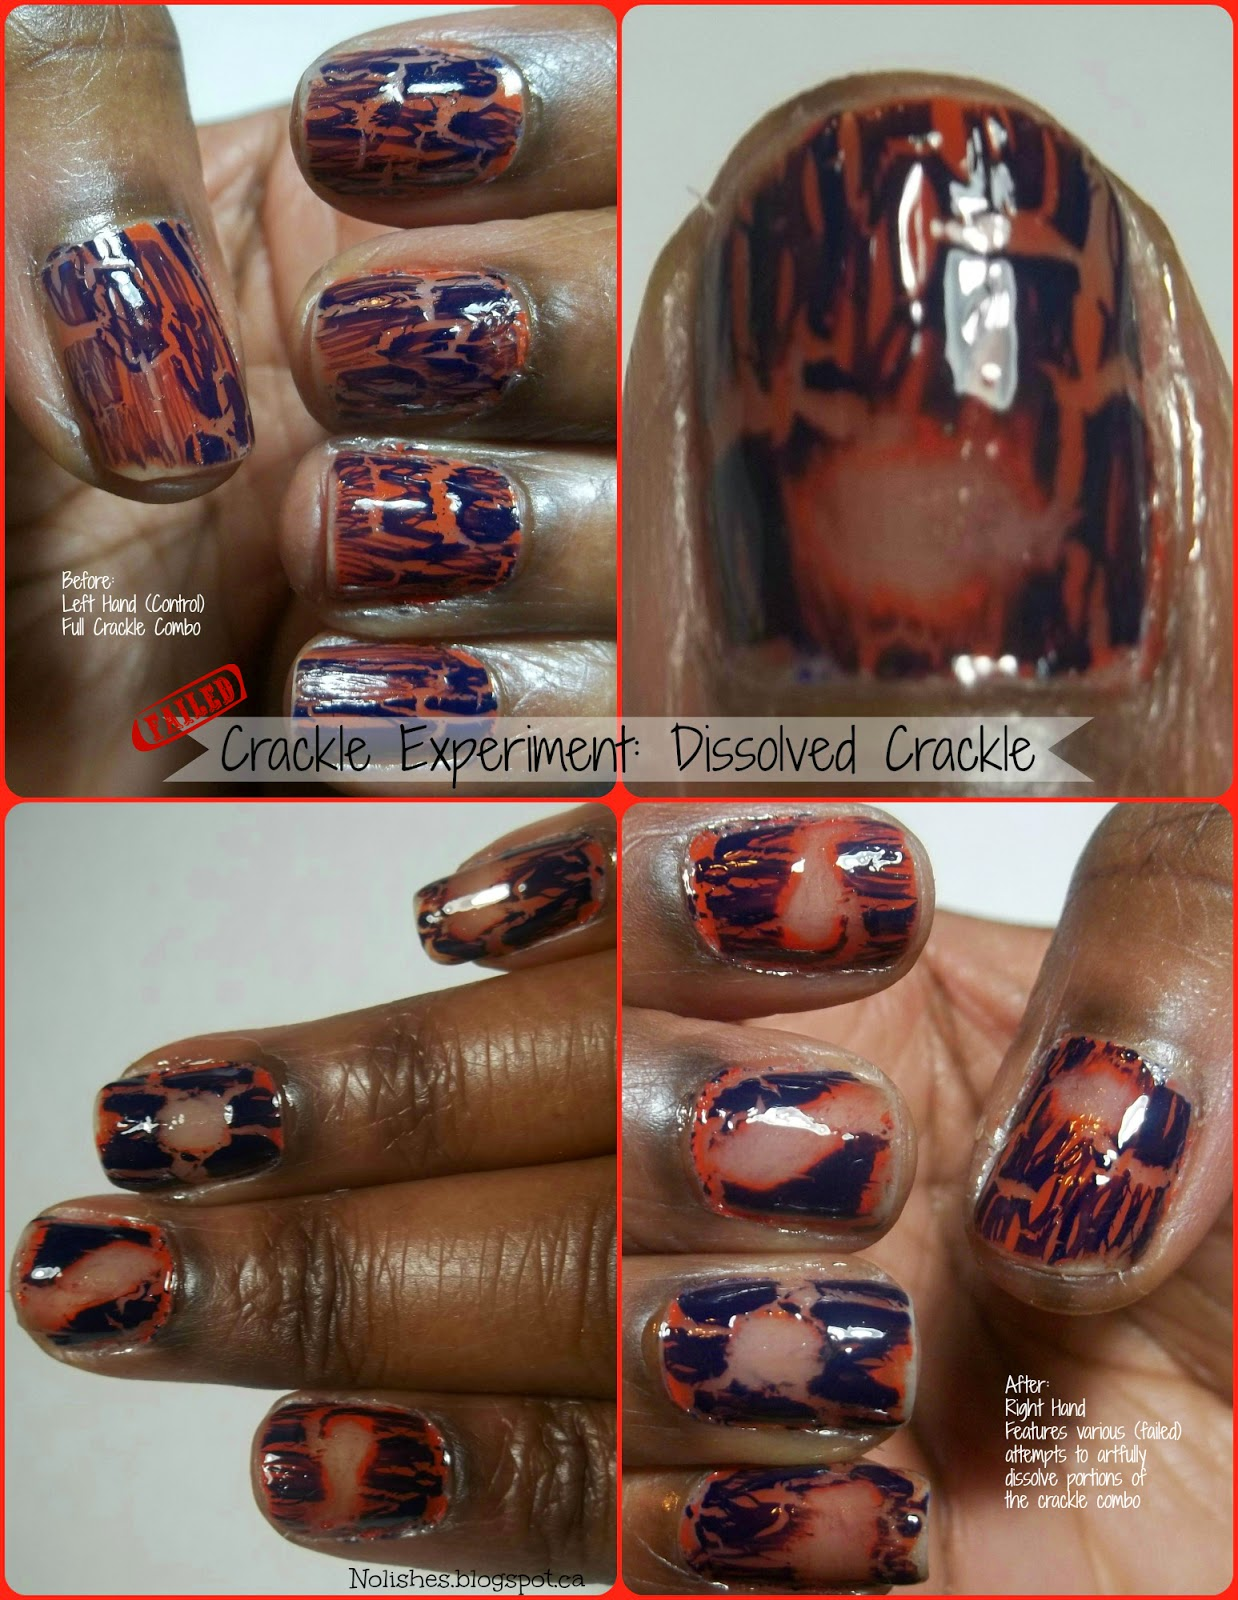 Collage showing the results of a manicure experiment in which a manicure with an orange base covered in royal blue crackle top coat, was subjected to various attempts to remove sections of the polish (using nail polish remover), in a way that was pleasing to the eye - the experiment failed.